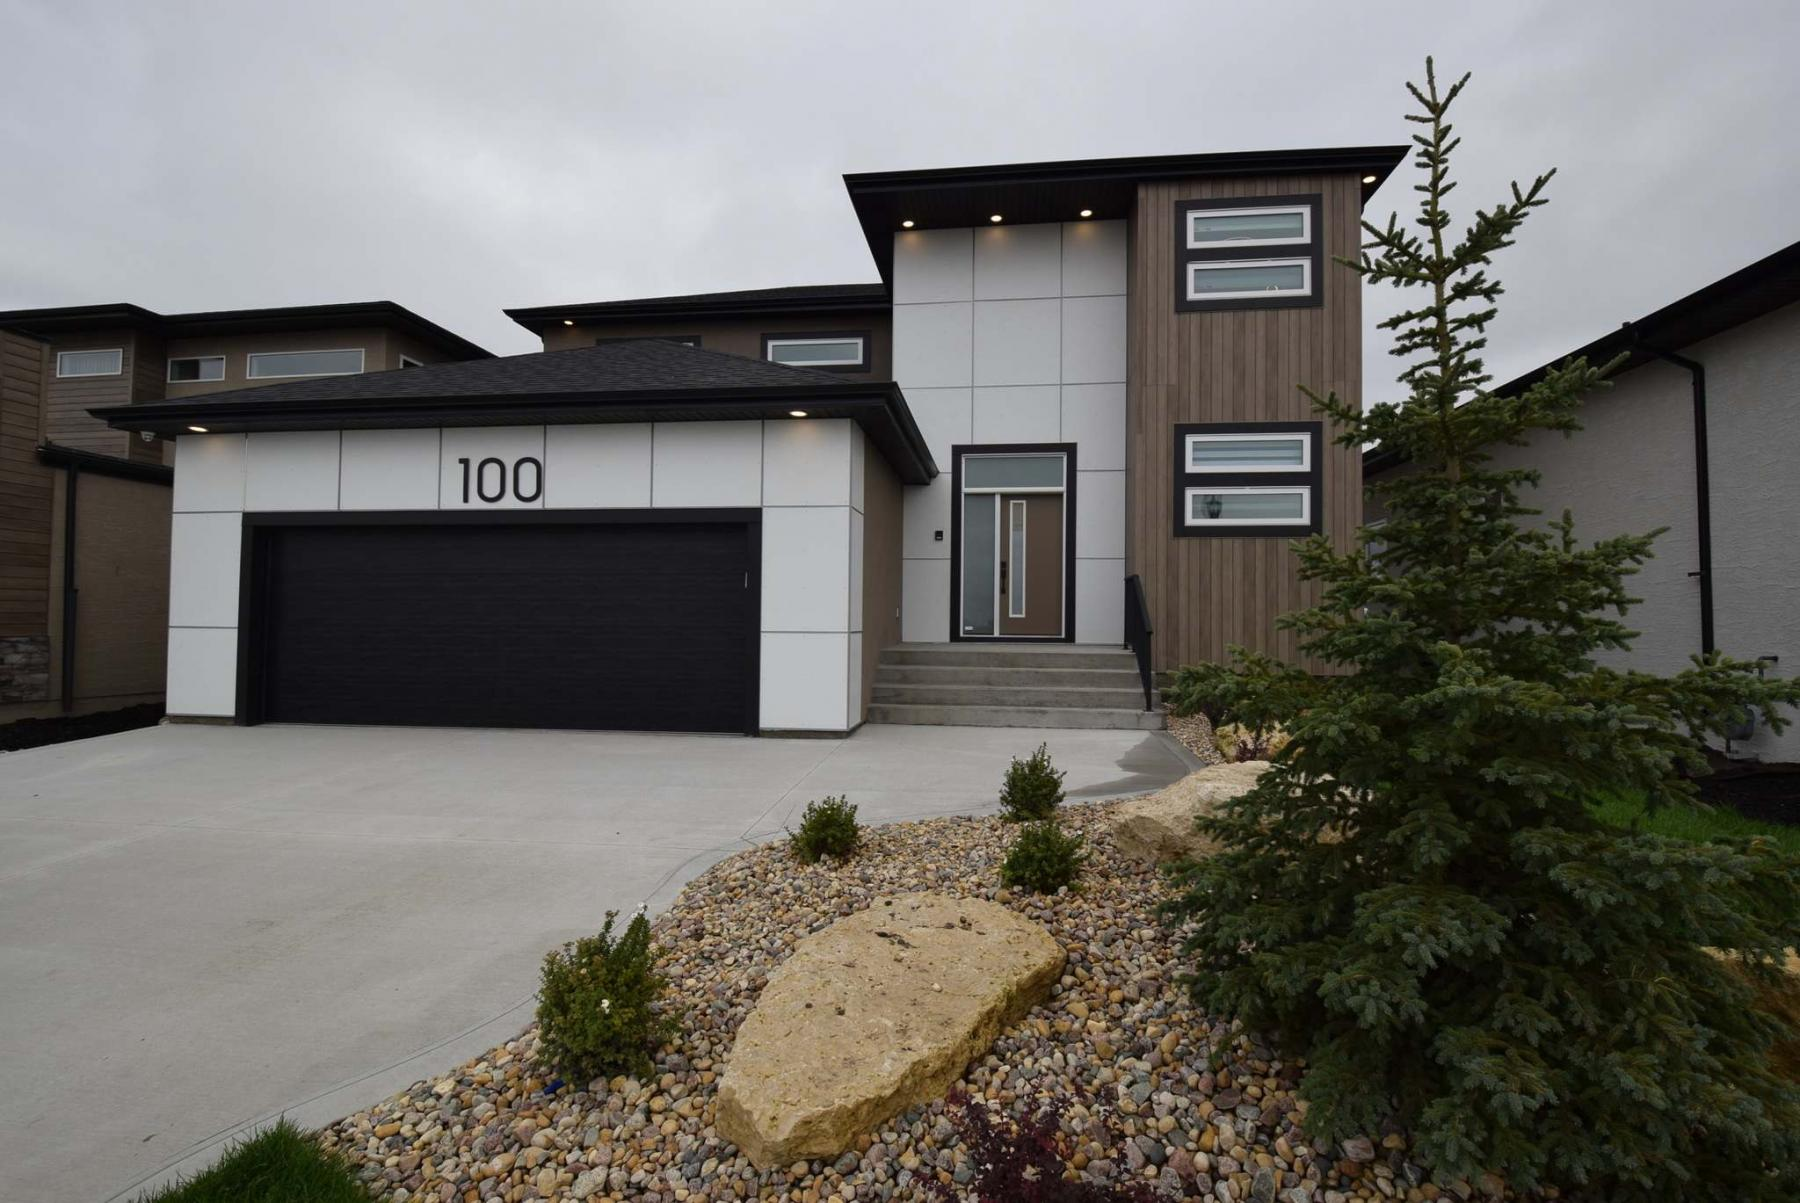 <p>Photos by Todd Lewys / Winnipeg Free Press</p><p>This two-storey home at 100 Creemans Cres. has obvious curb appeal, and its interior lives up to that stunning first impression.</p>